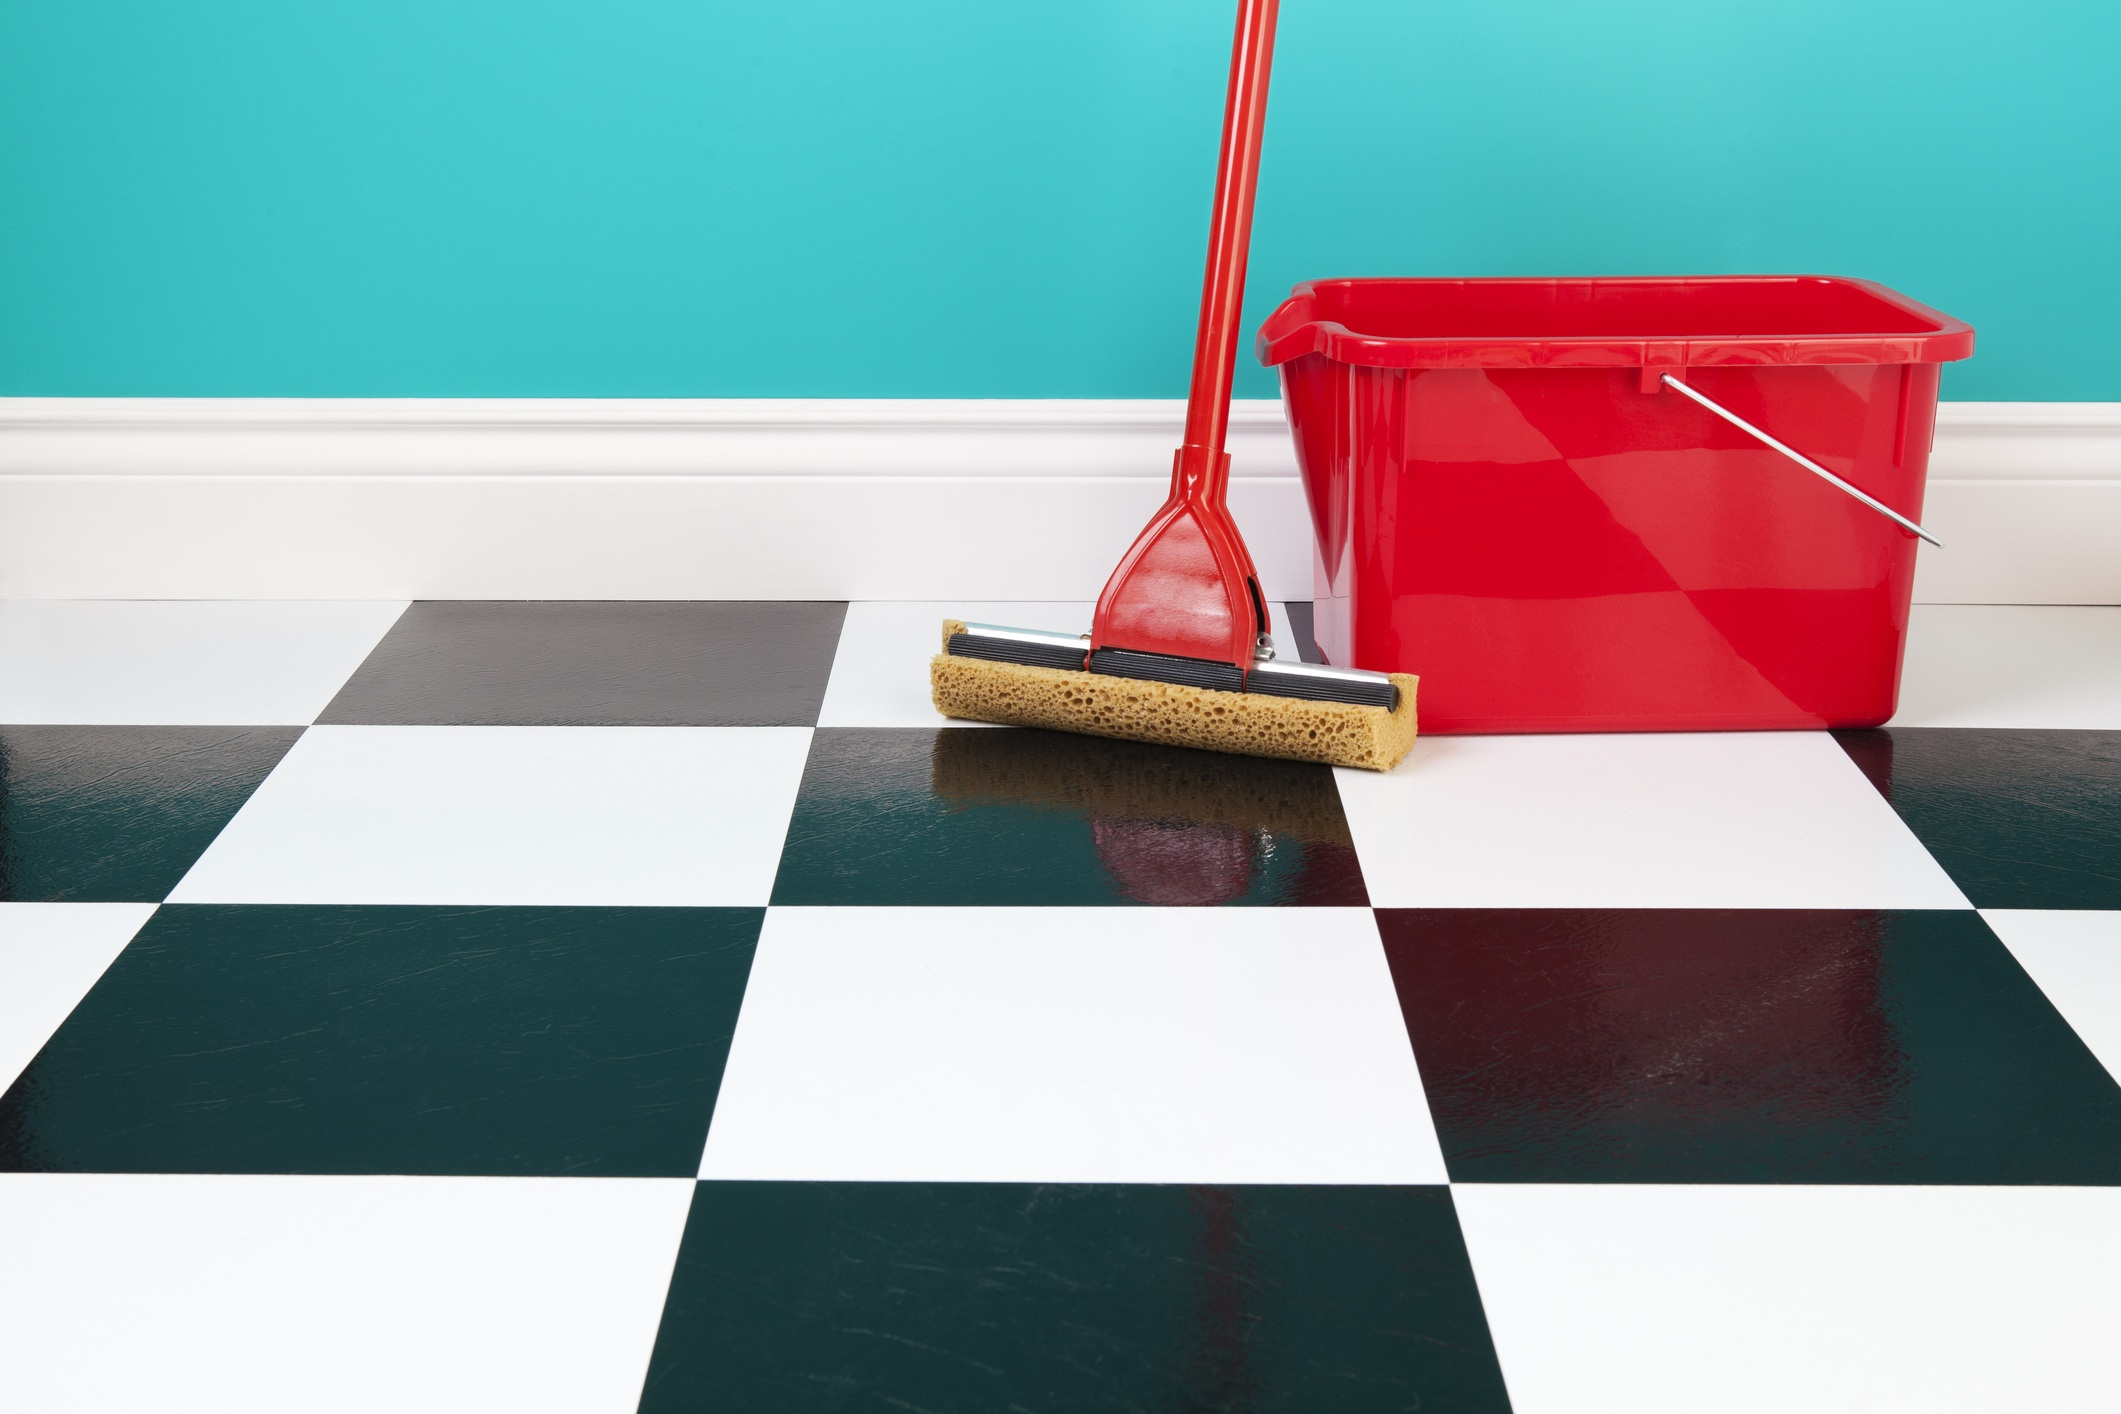 linoleum floor with mop and bucket